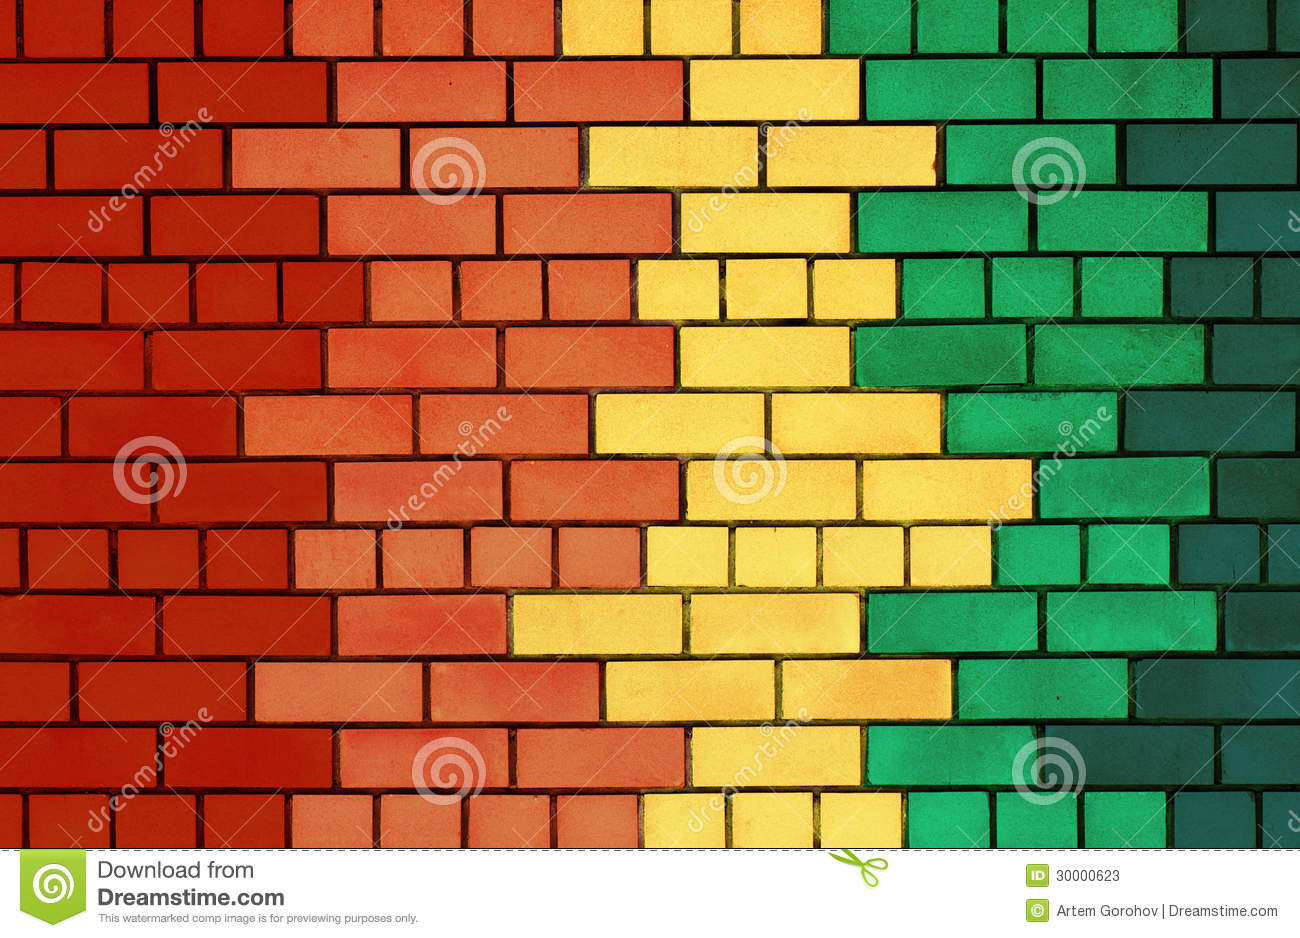 Colorful brick wall stock image. Image of large, group - 30000623